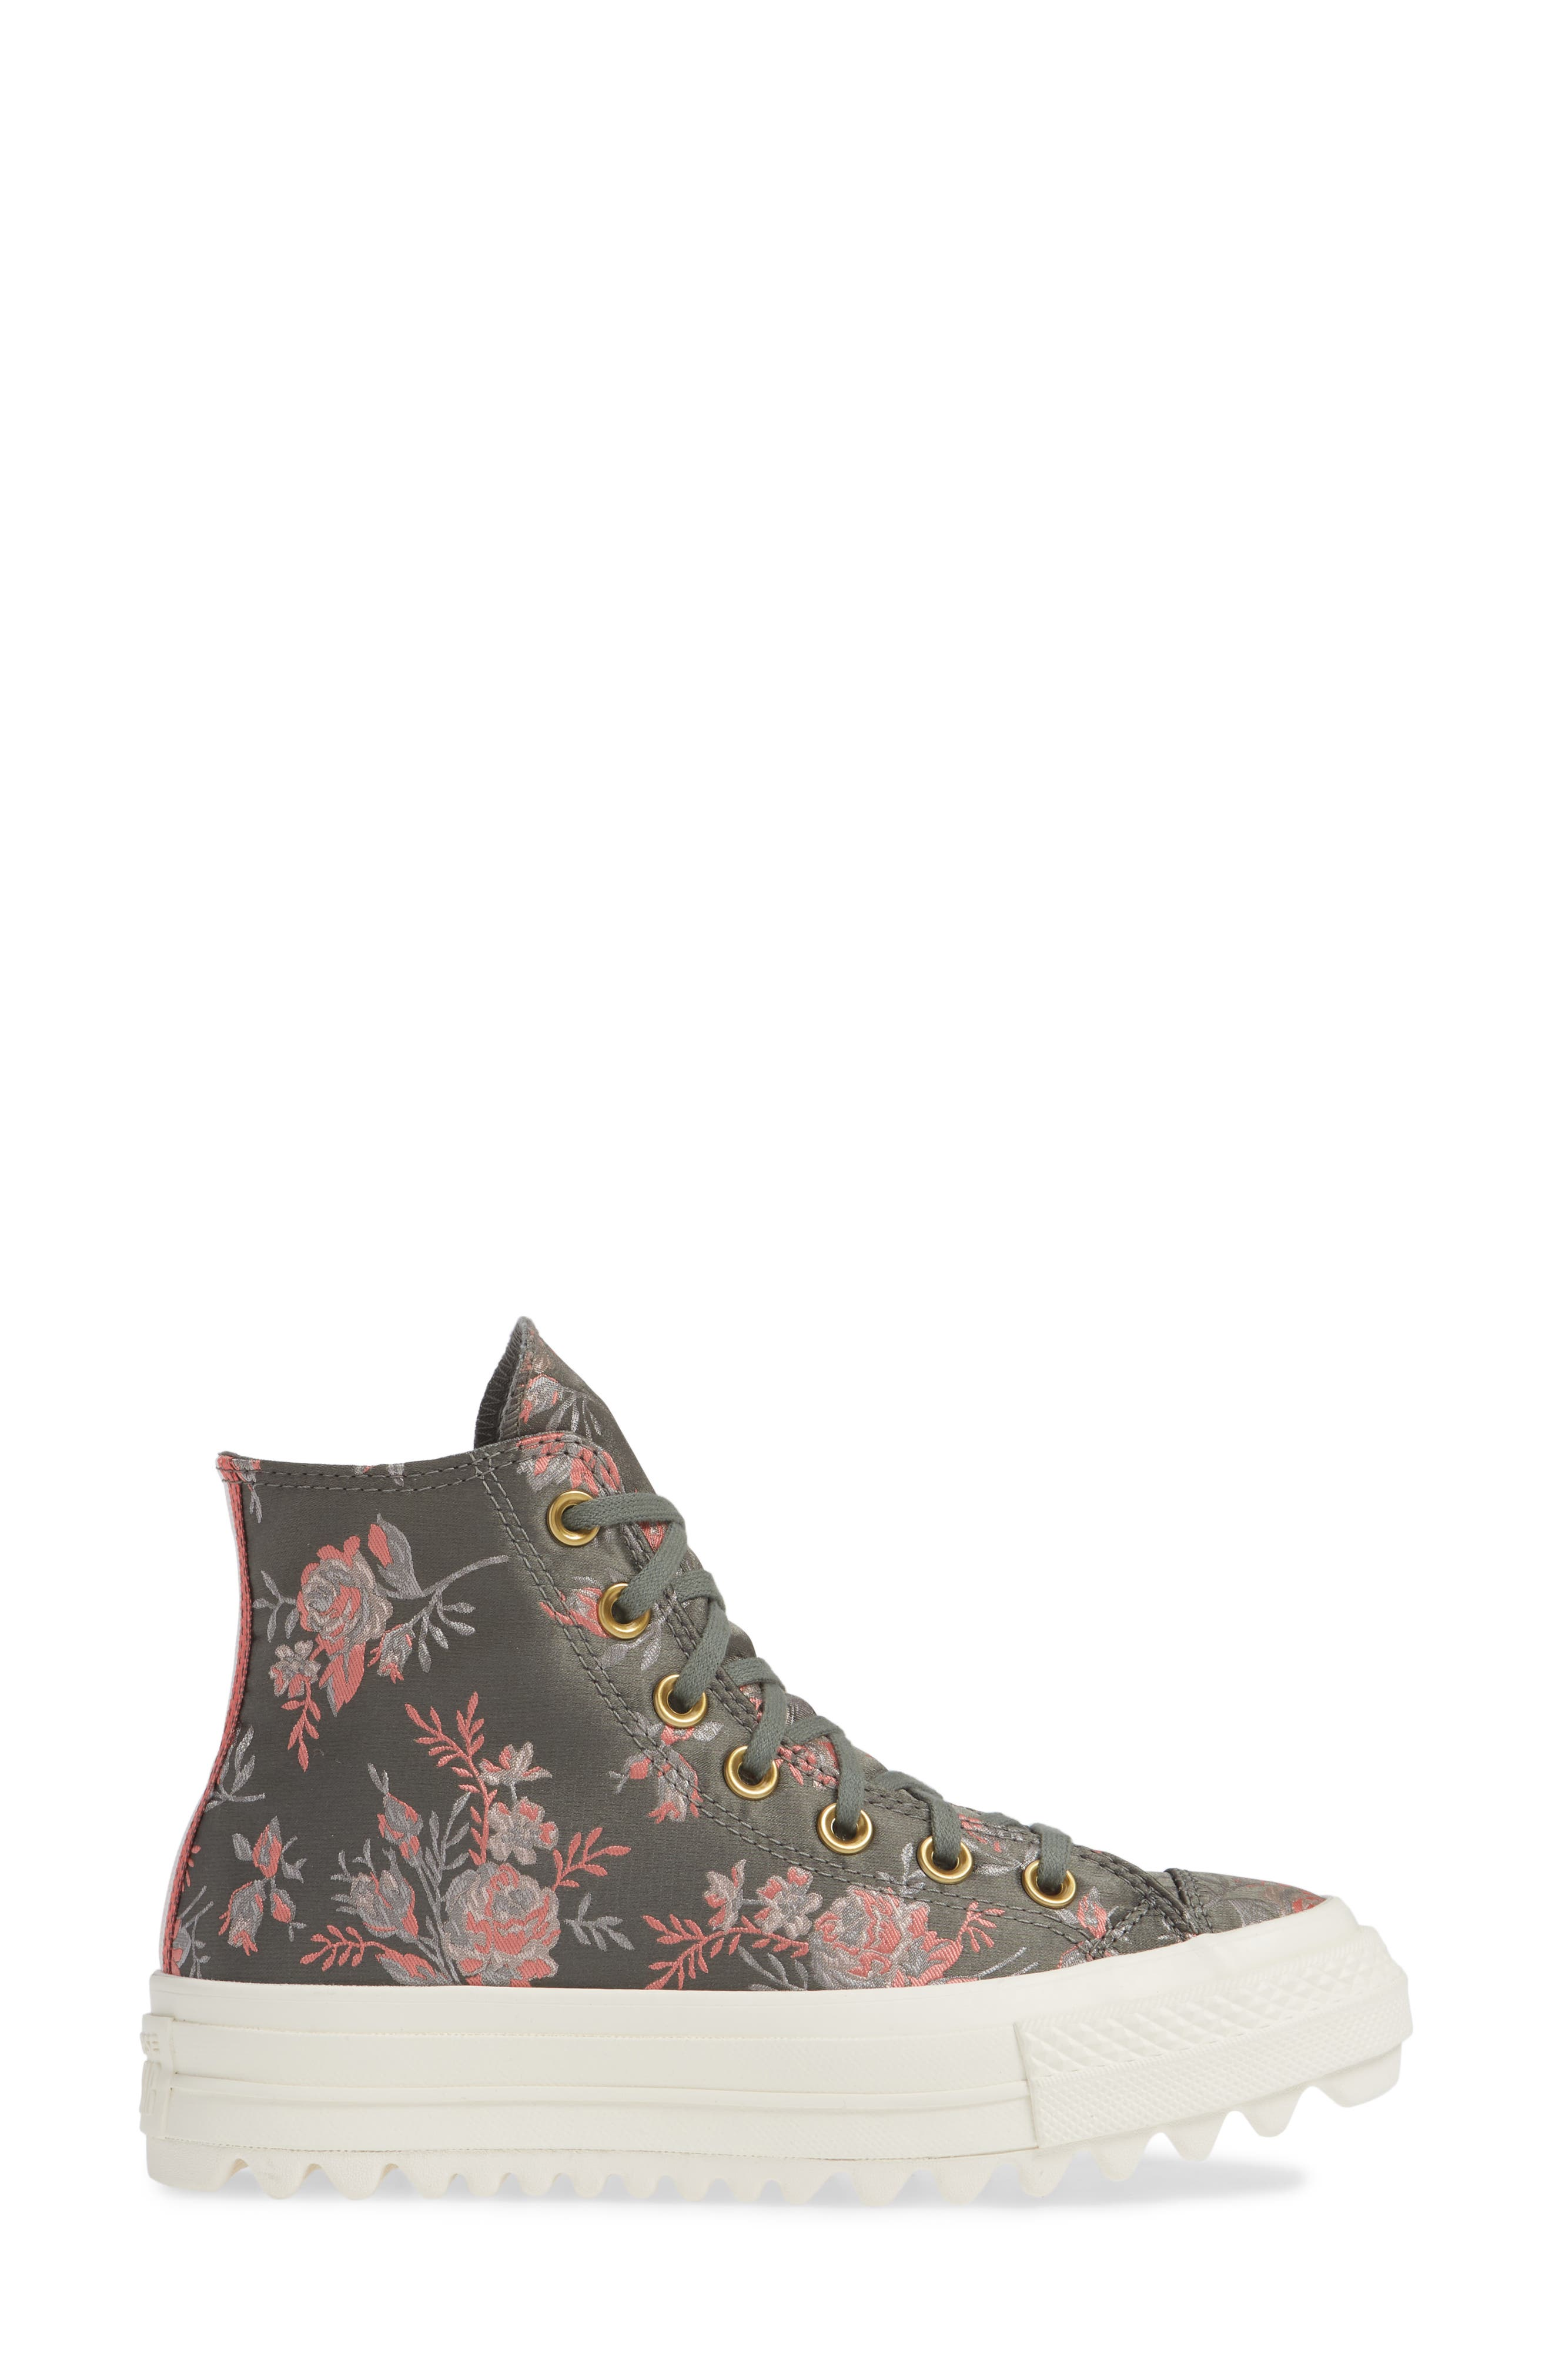 Chuck Taylor<sup>®</sup> All Star<sup>®</sup> Lift Ripple Parkway Floral High Top Sneaker,                             Alternate thumbnail 3, color,                             020